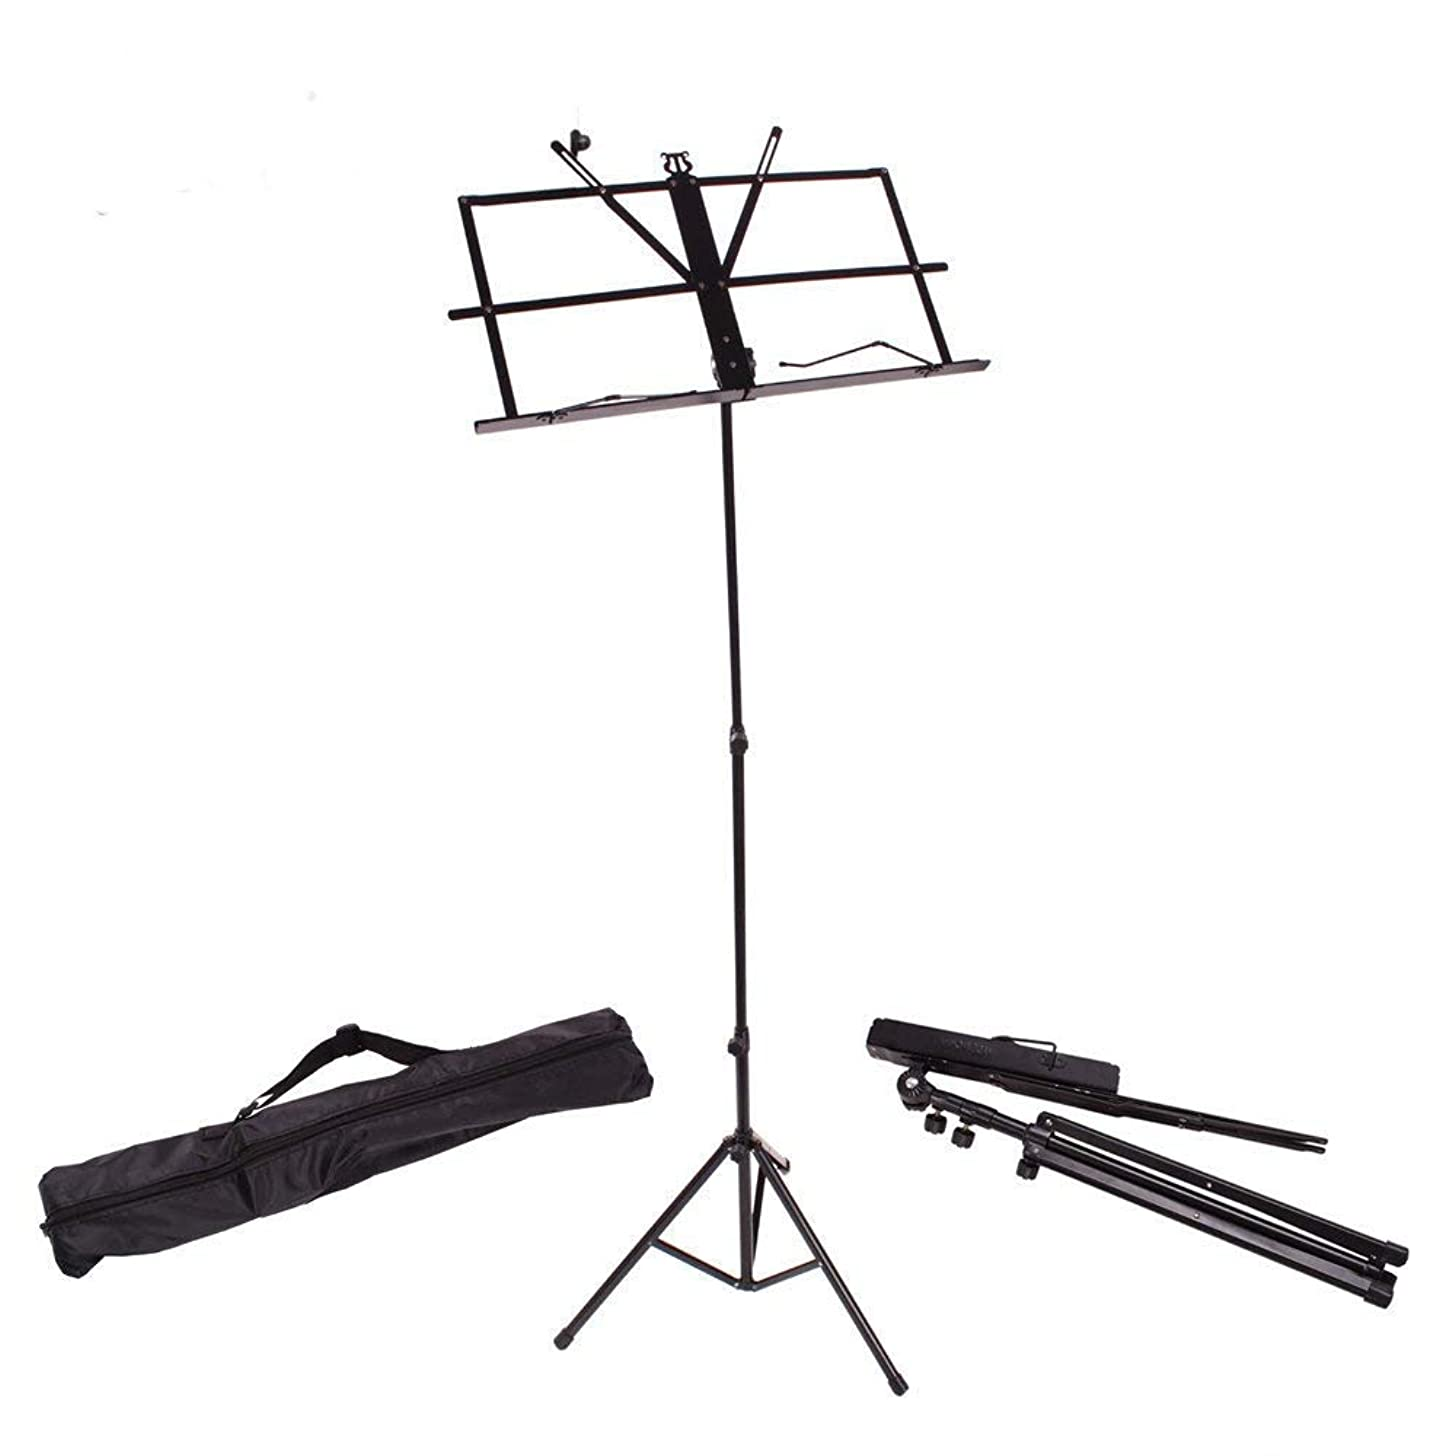 Glarry Folding Music Sheet Stand With Carrying Bag Portable Adjustable Music Stand For Music Instrument Books